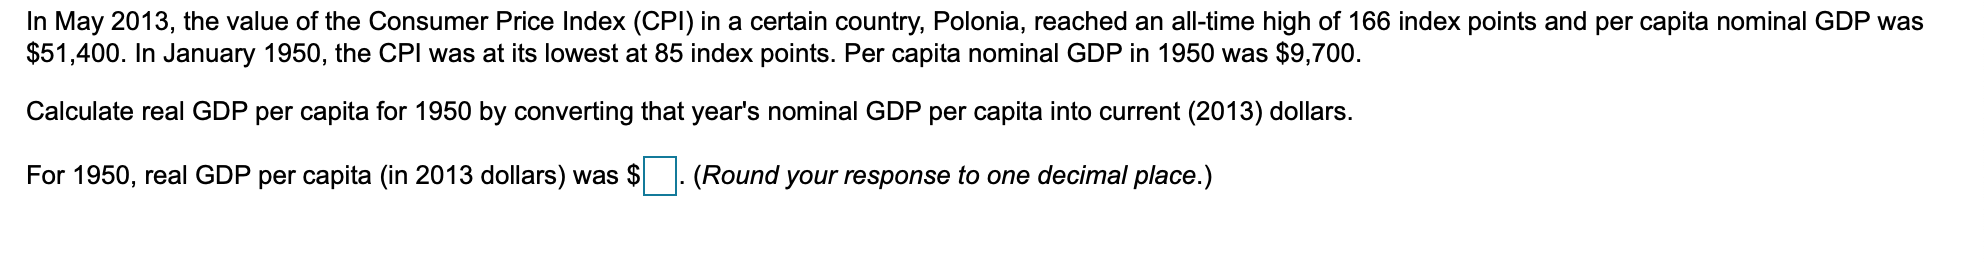 In May 2013, the value of the Consumer Price Index (CPI) in a certain country, Polonia, reached an all-time high of 166 index points and per capita nominal GDP was $51,400. In January 1950, the CPI was at its lowest at 85 index points. Per capita nominal GDP in 1950 was $9,700. Calculate real GDP per capita for 1950 by converting that year's nominal GDP per capita into current (2013) dollars. For 1950, real GDP per capita (in 2013 dollars) was (Round your response to one decimal place.)